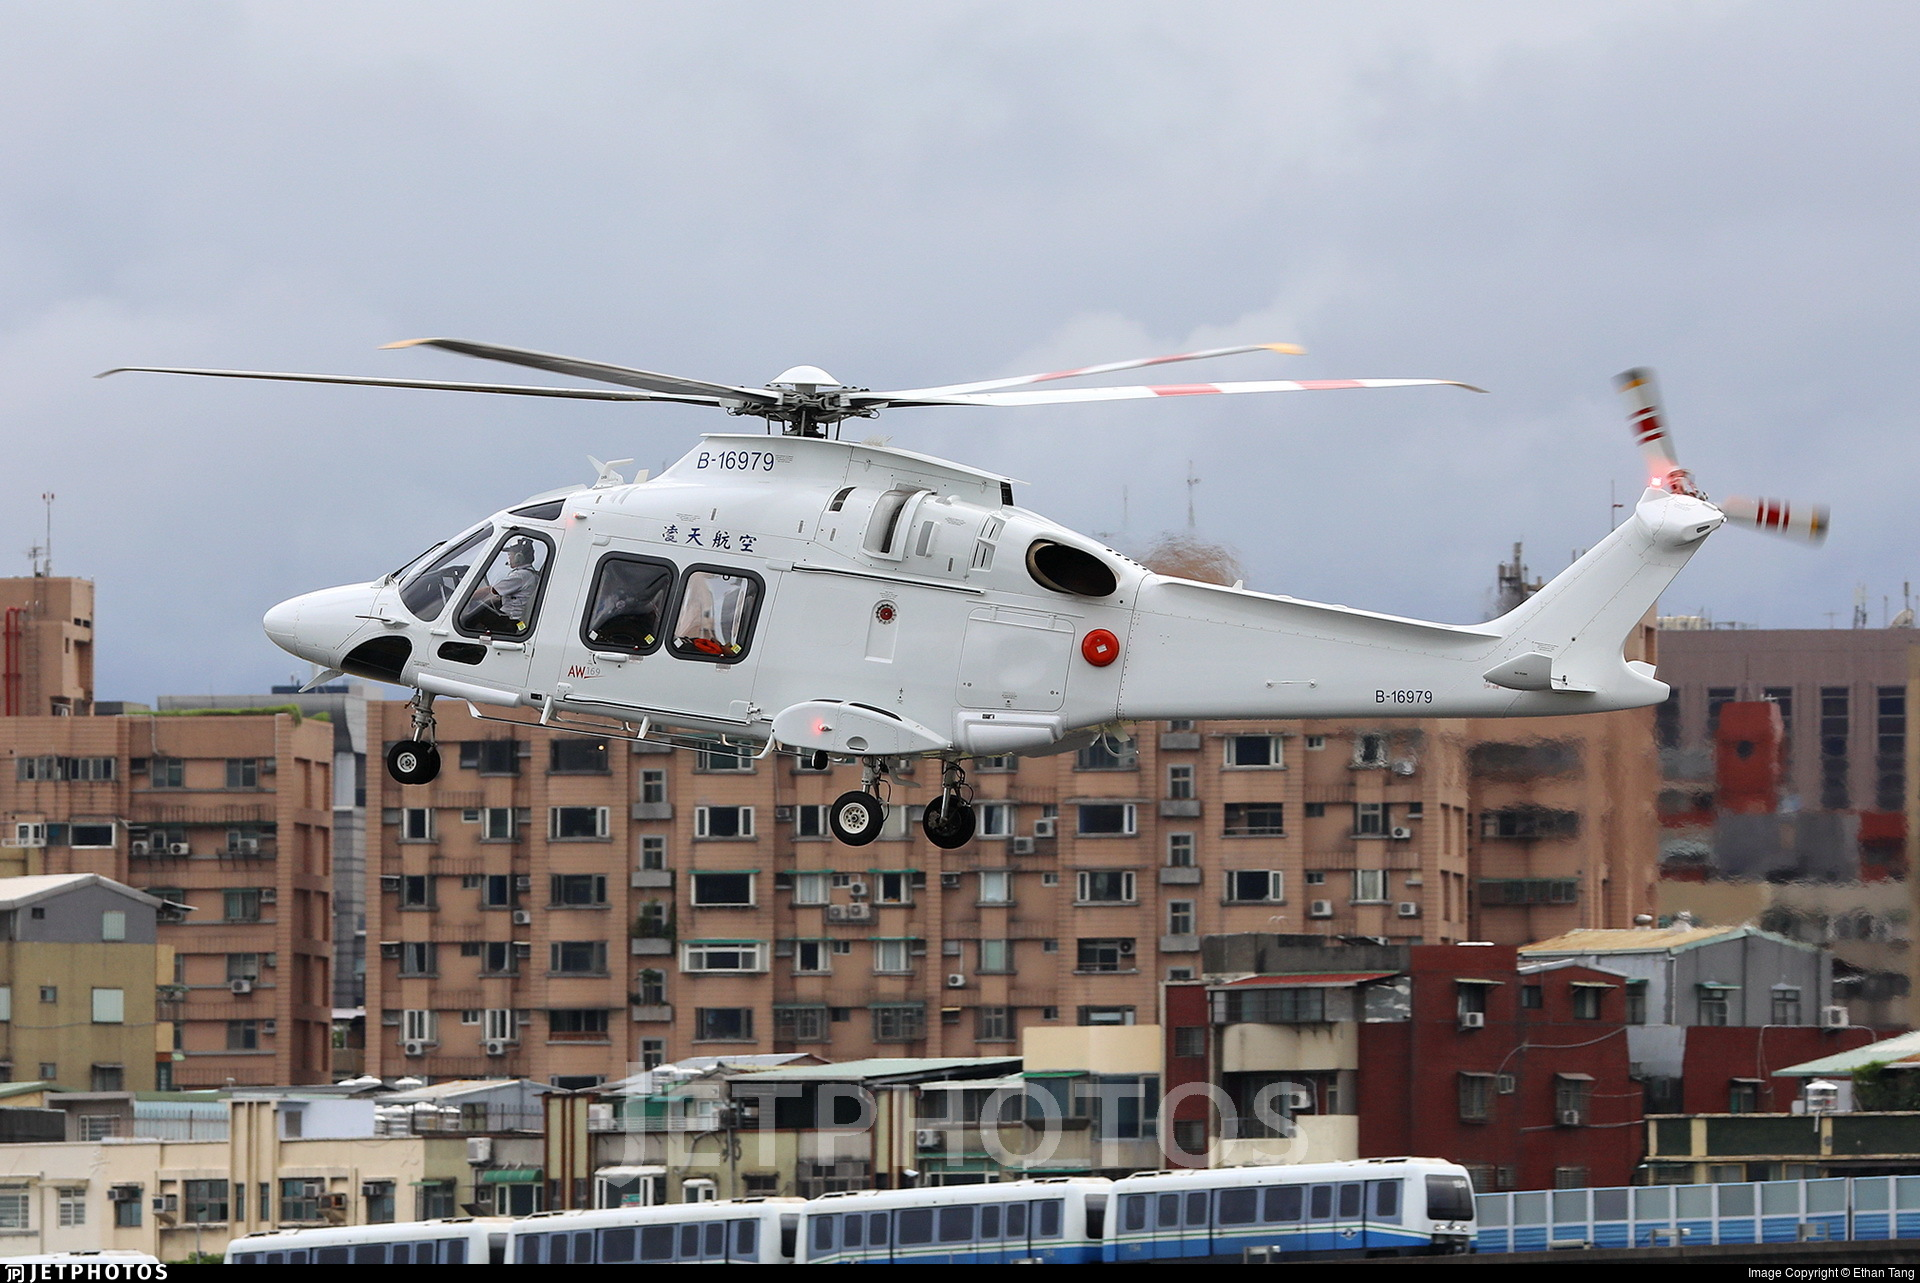 B-16979 - Agusta-Westland AW-169 - Emerald Pacific Airlines